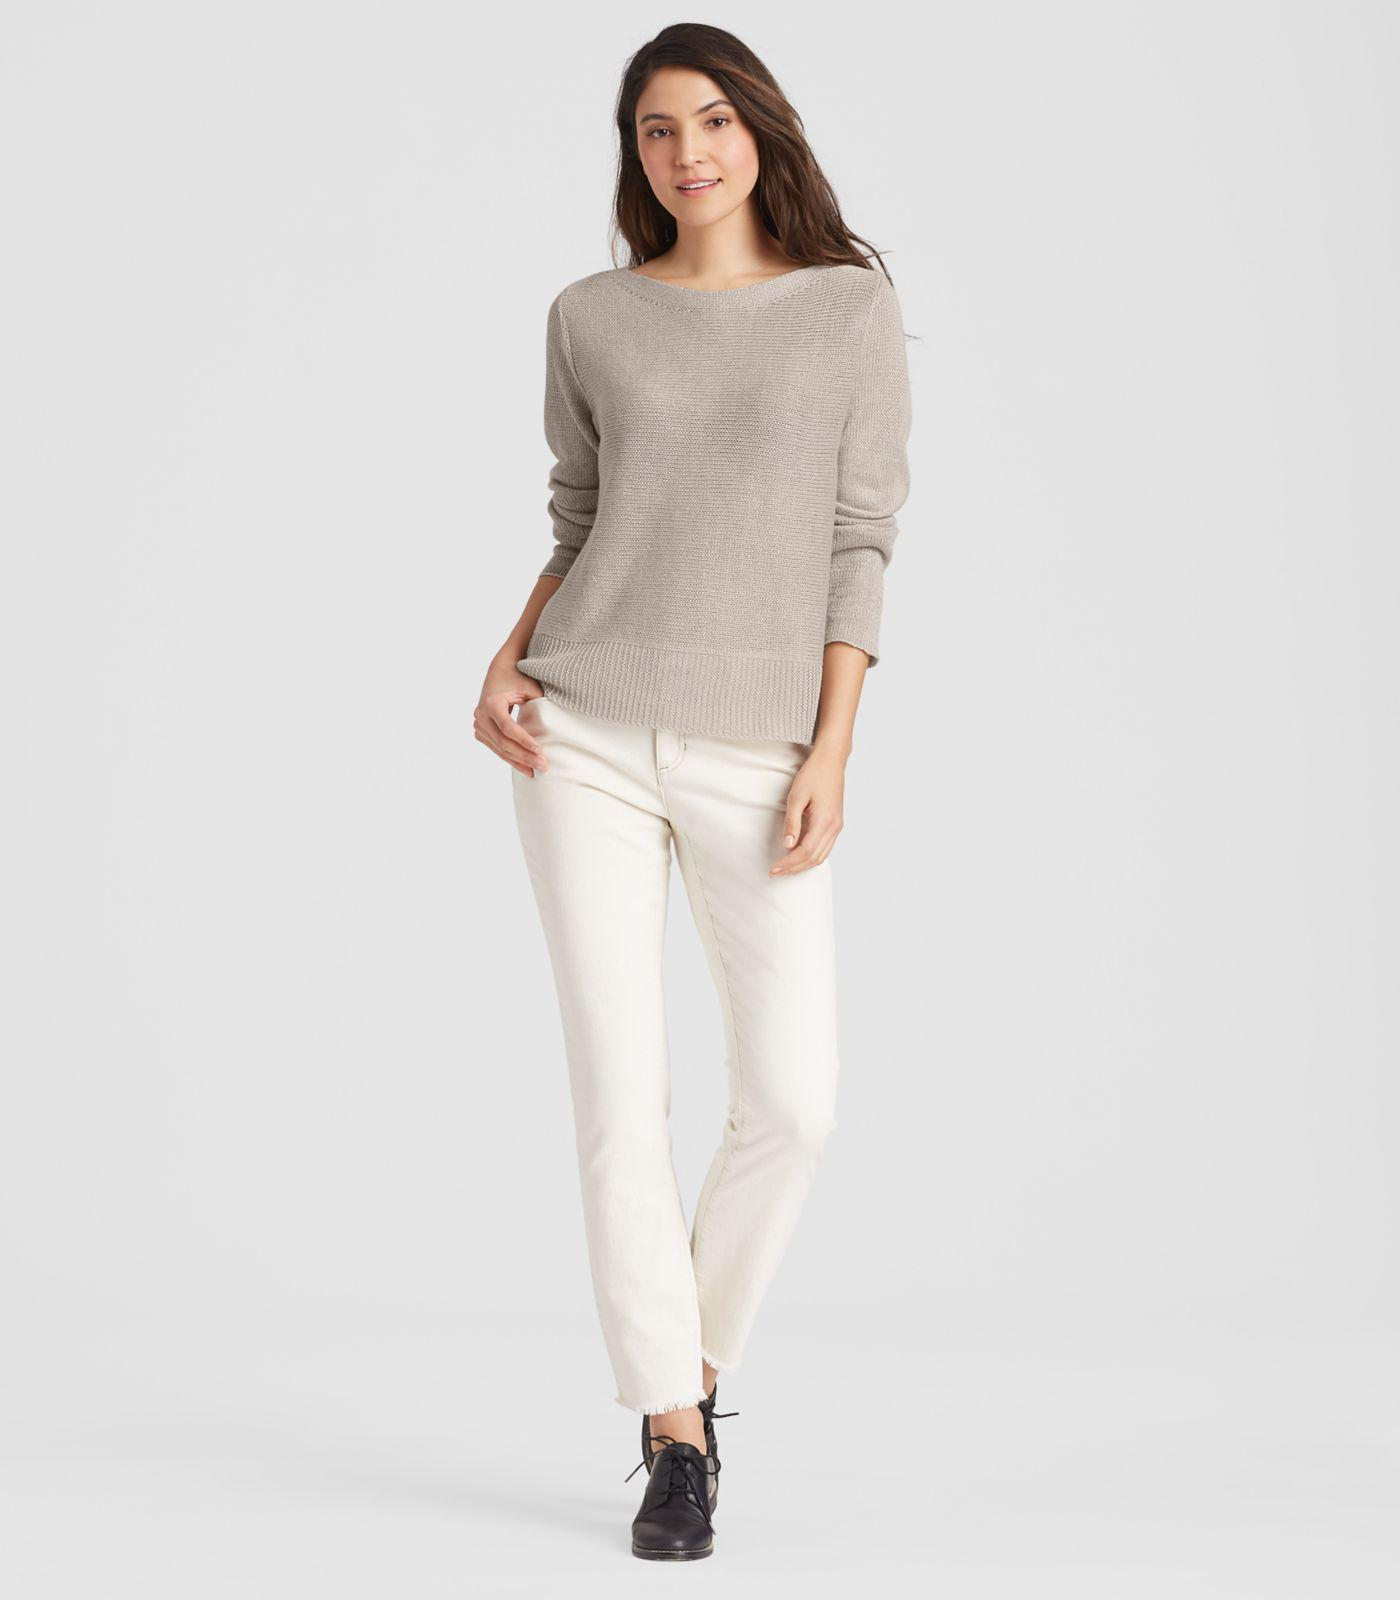 9b4612adfe9 Eileen Fisher Linen Delave Box-top in Natural - Lyst